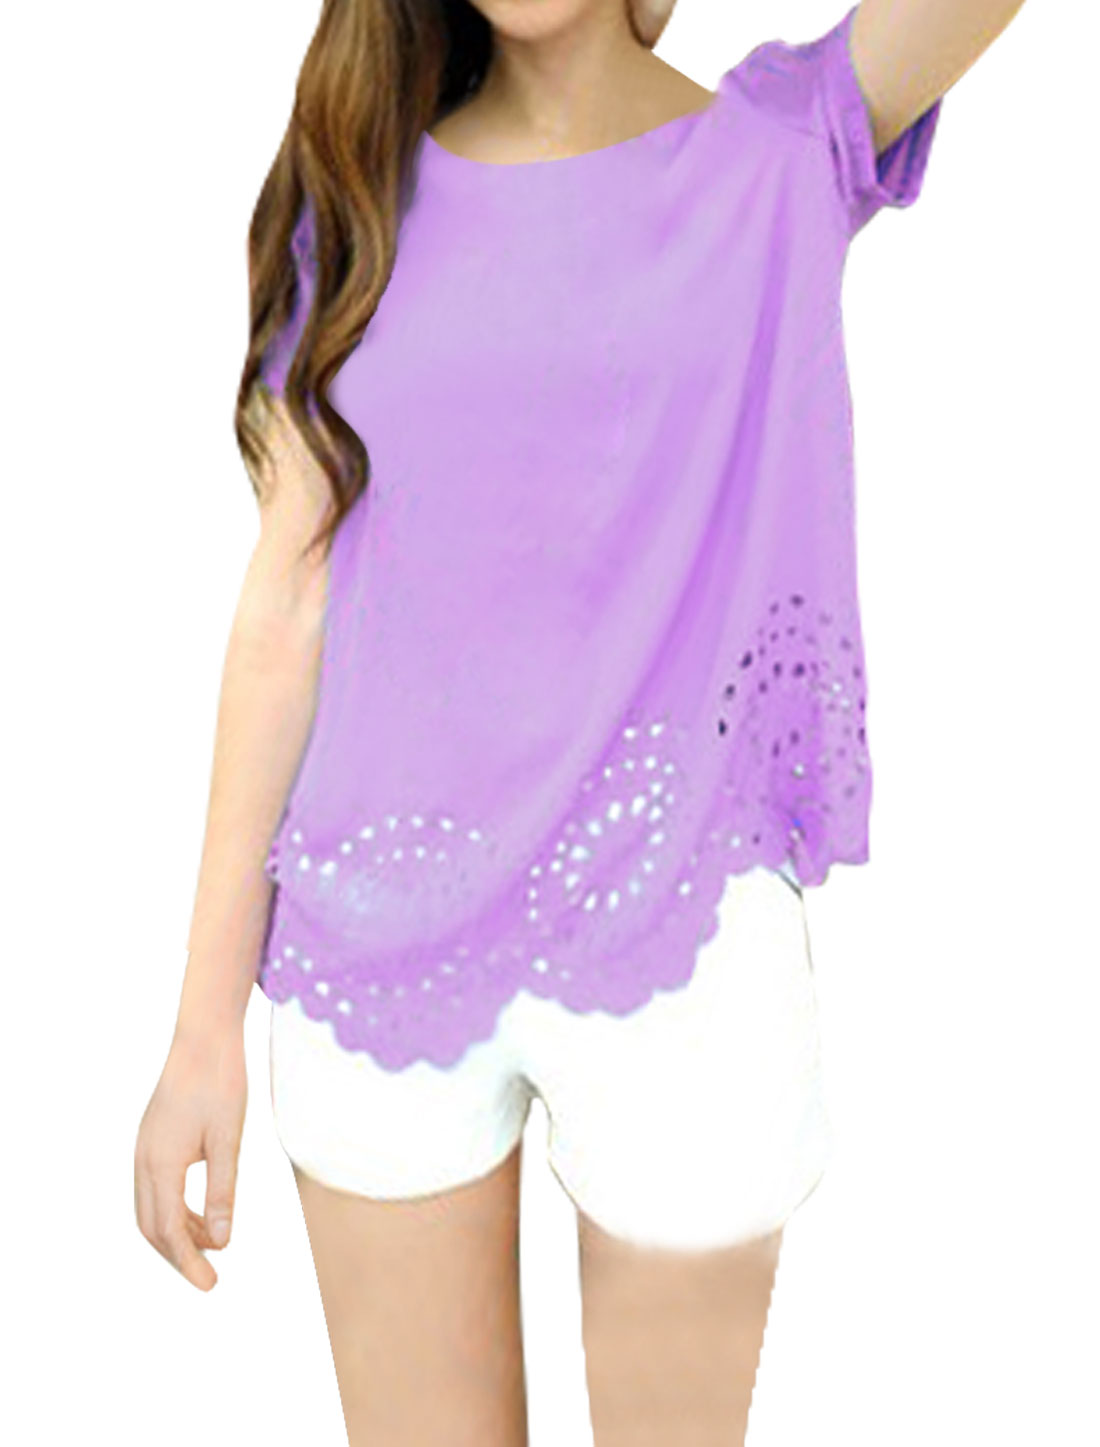 Women Chic Round Neck Short Sleeve Hollow Out Design Lavender Blouse XS